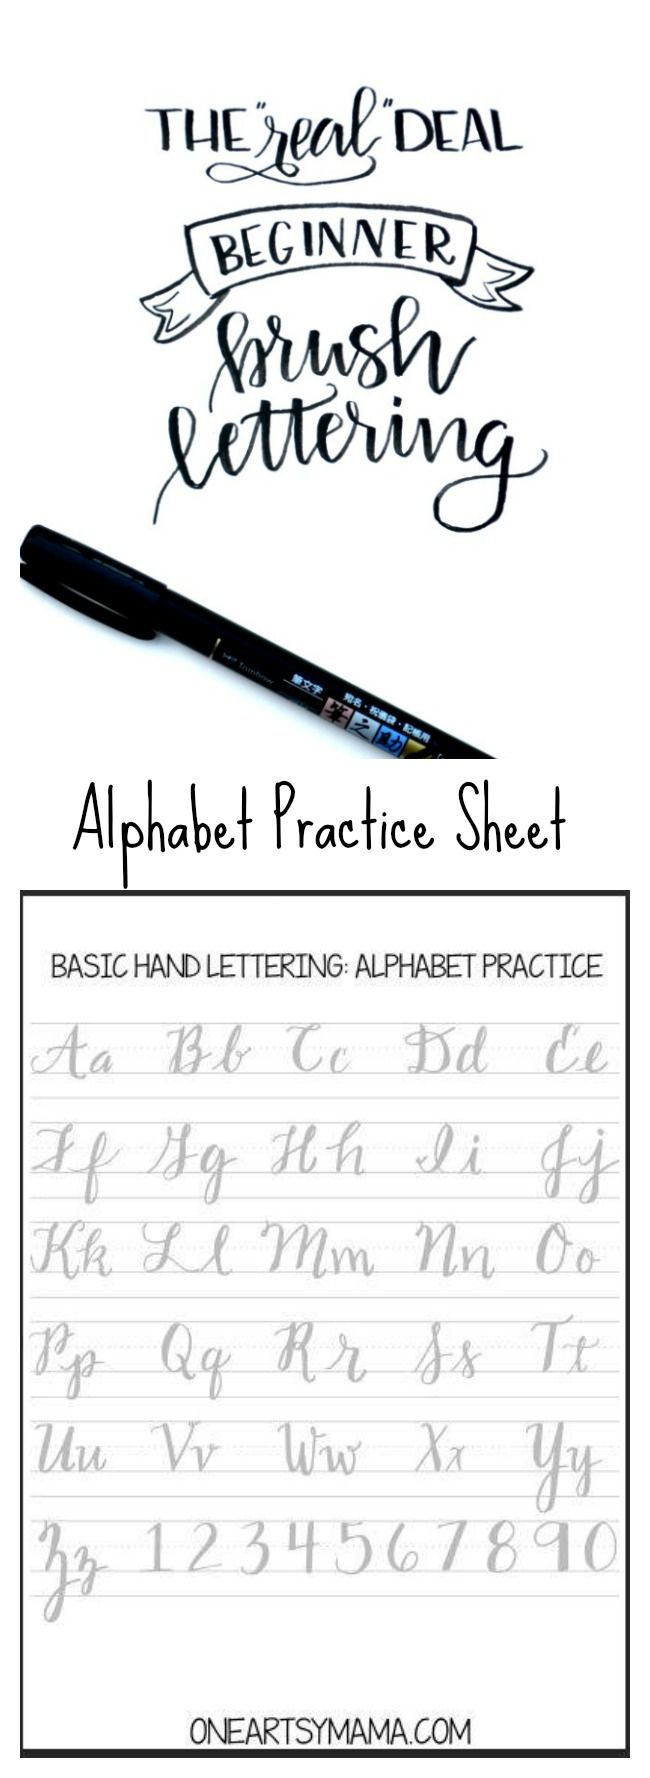 17 best ideas about handwriting practice on pinterest Where to learn calligraphy